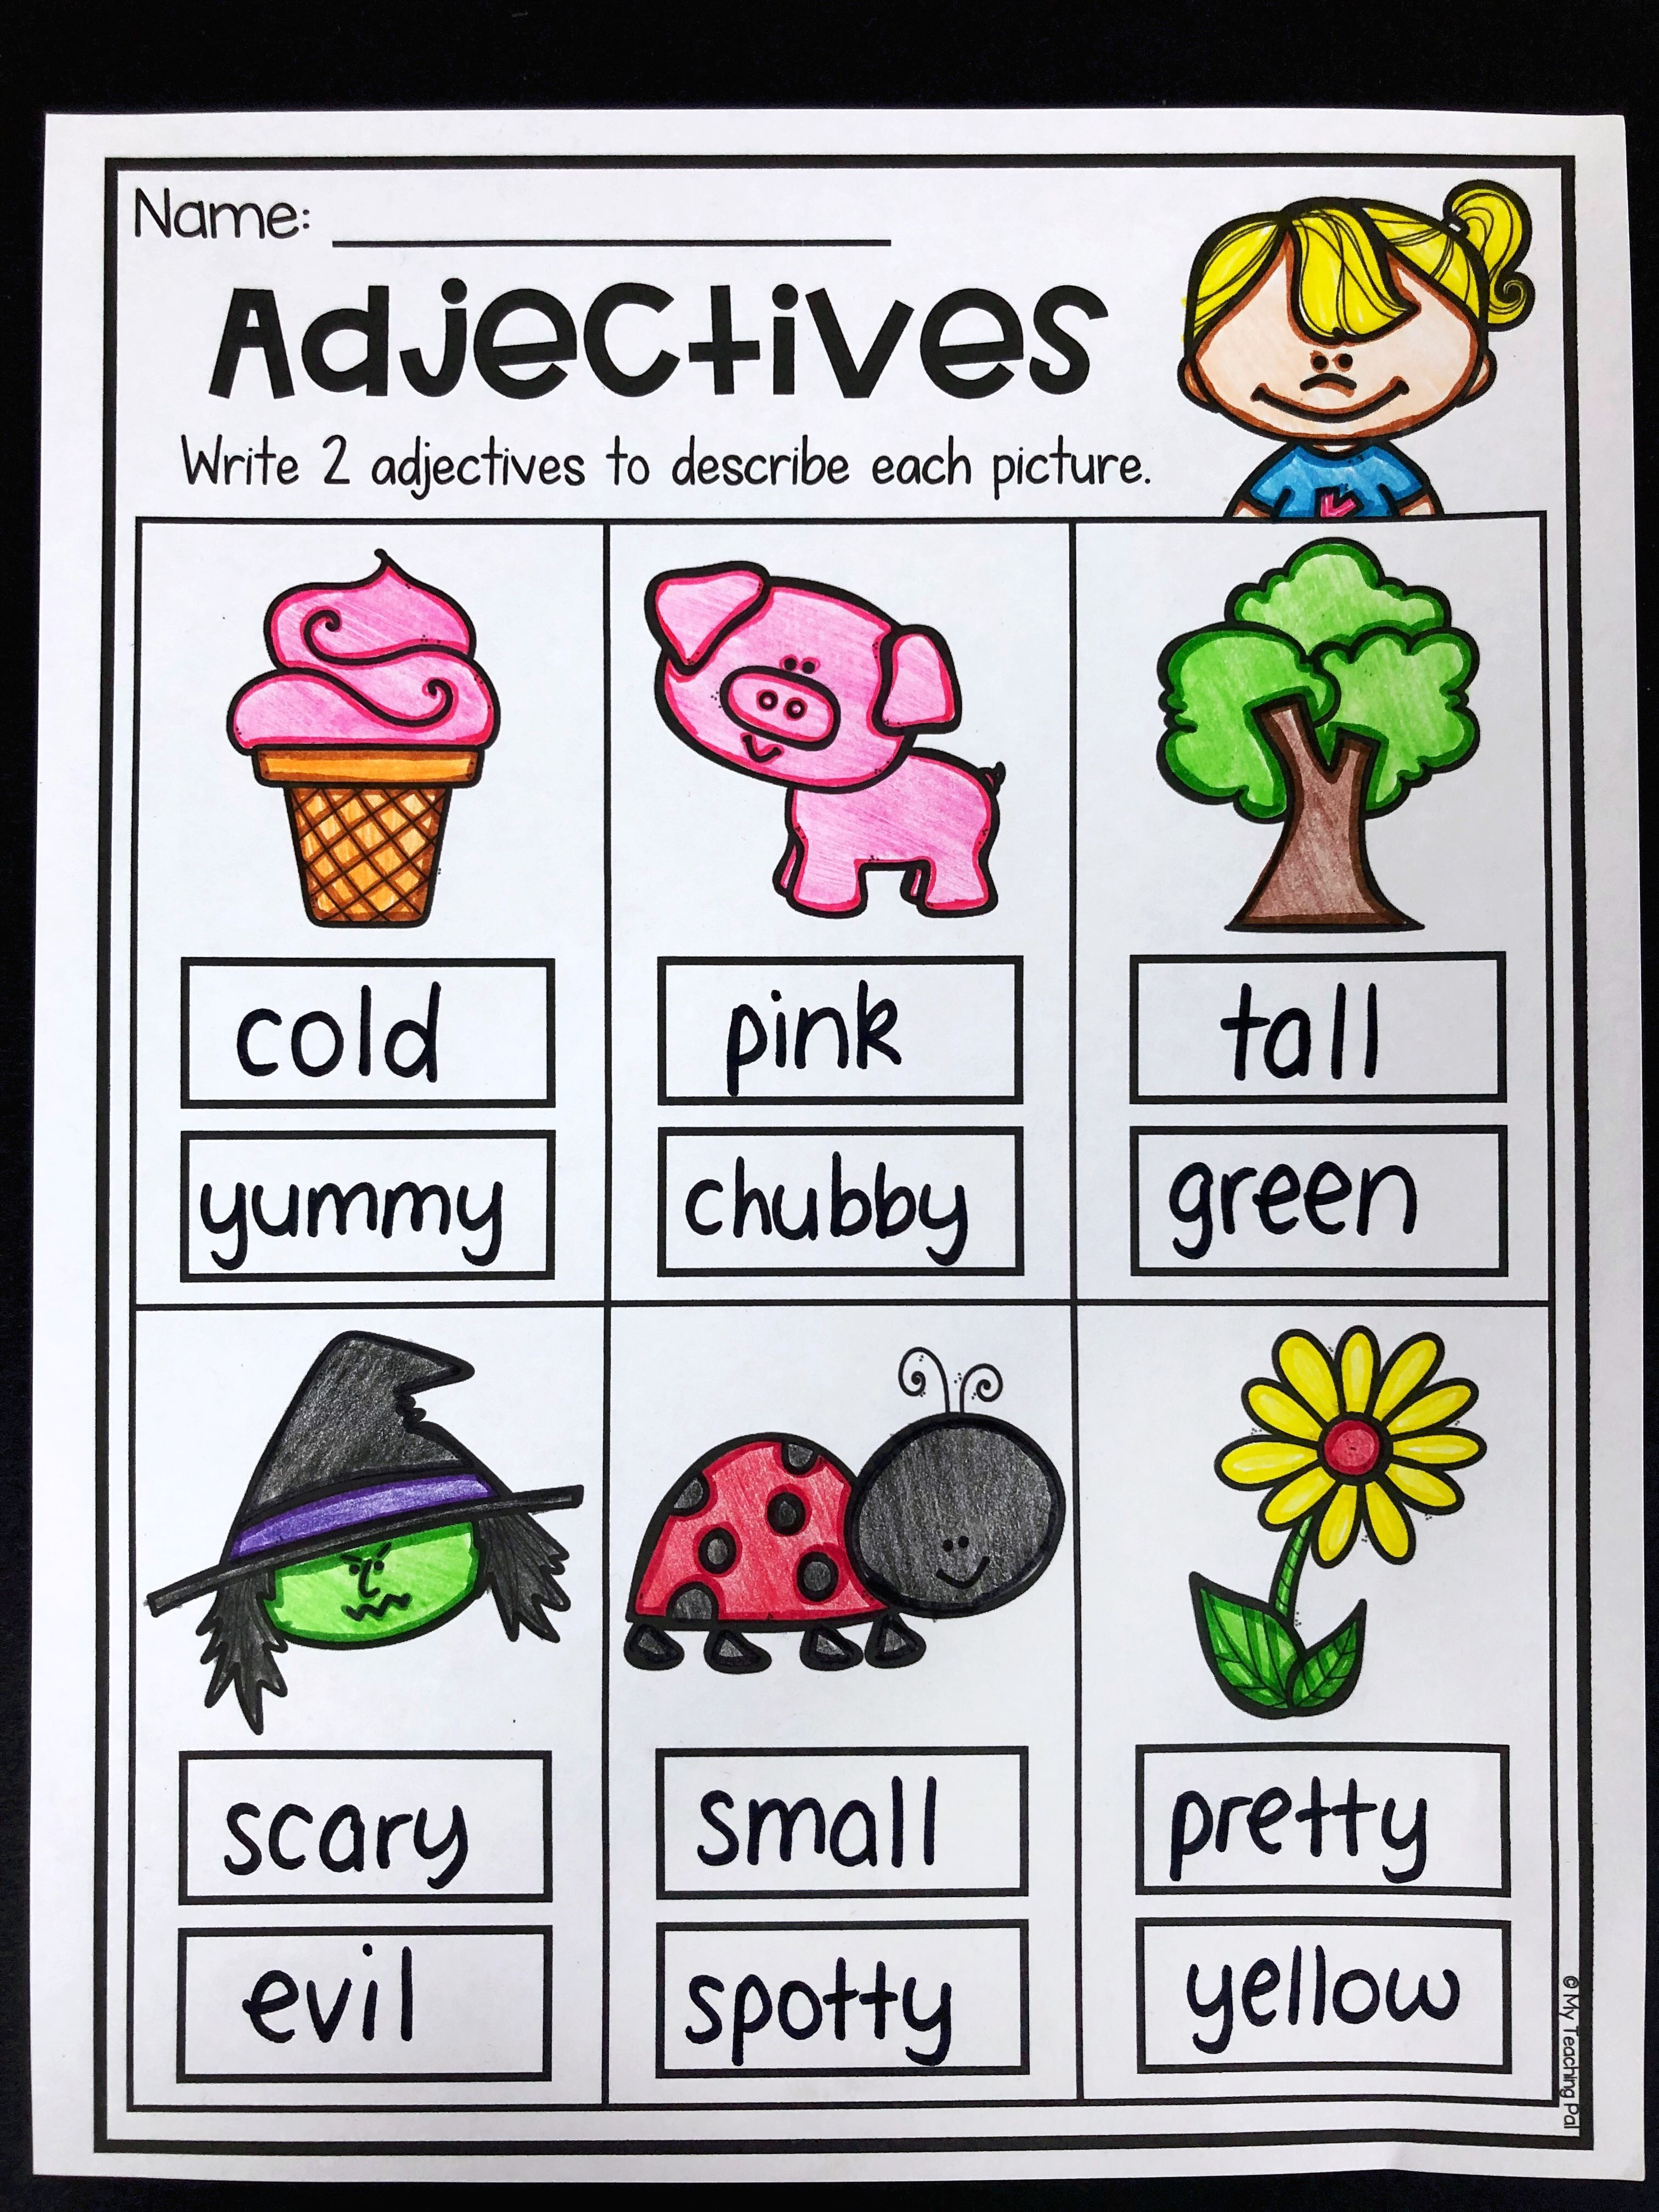 hight resolution of Adjectives worksheet for kindergarten and first grade. Students write two  adjectives to describe eac…   Adjectives activities